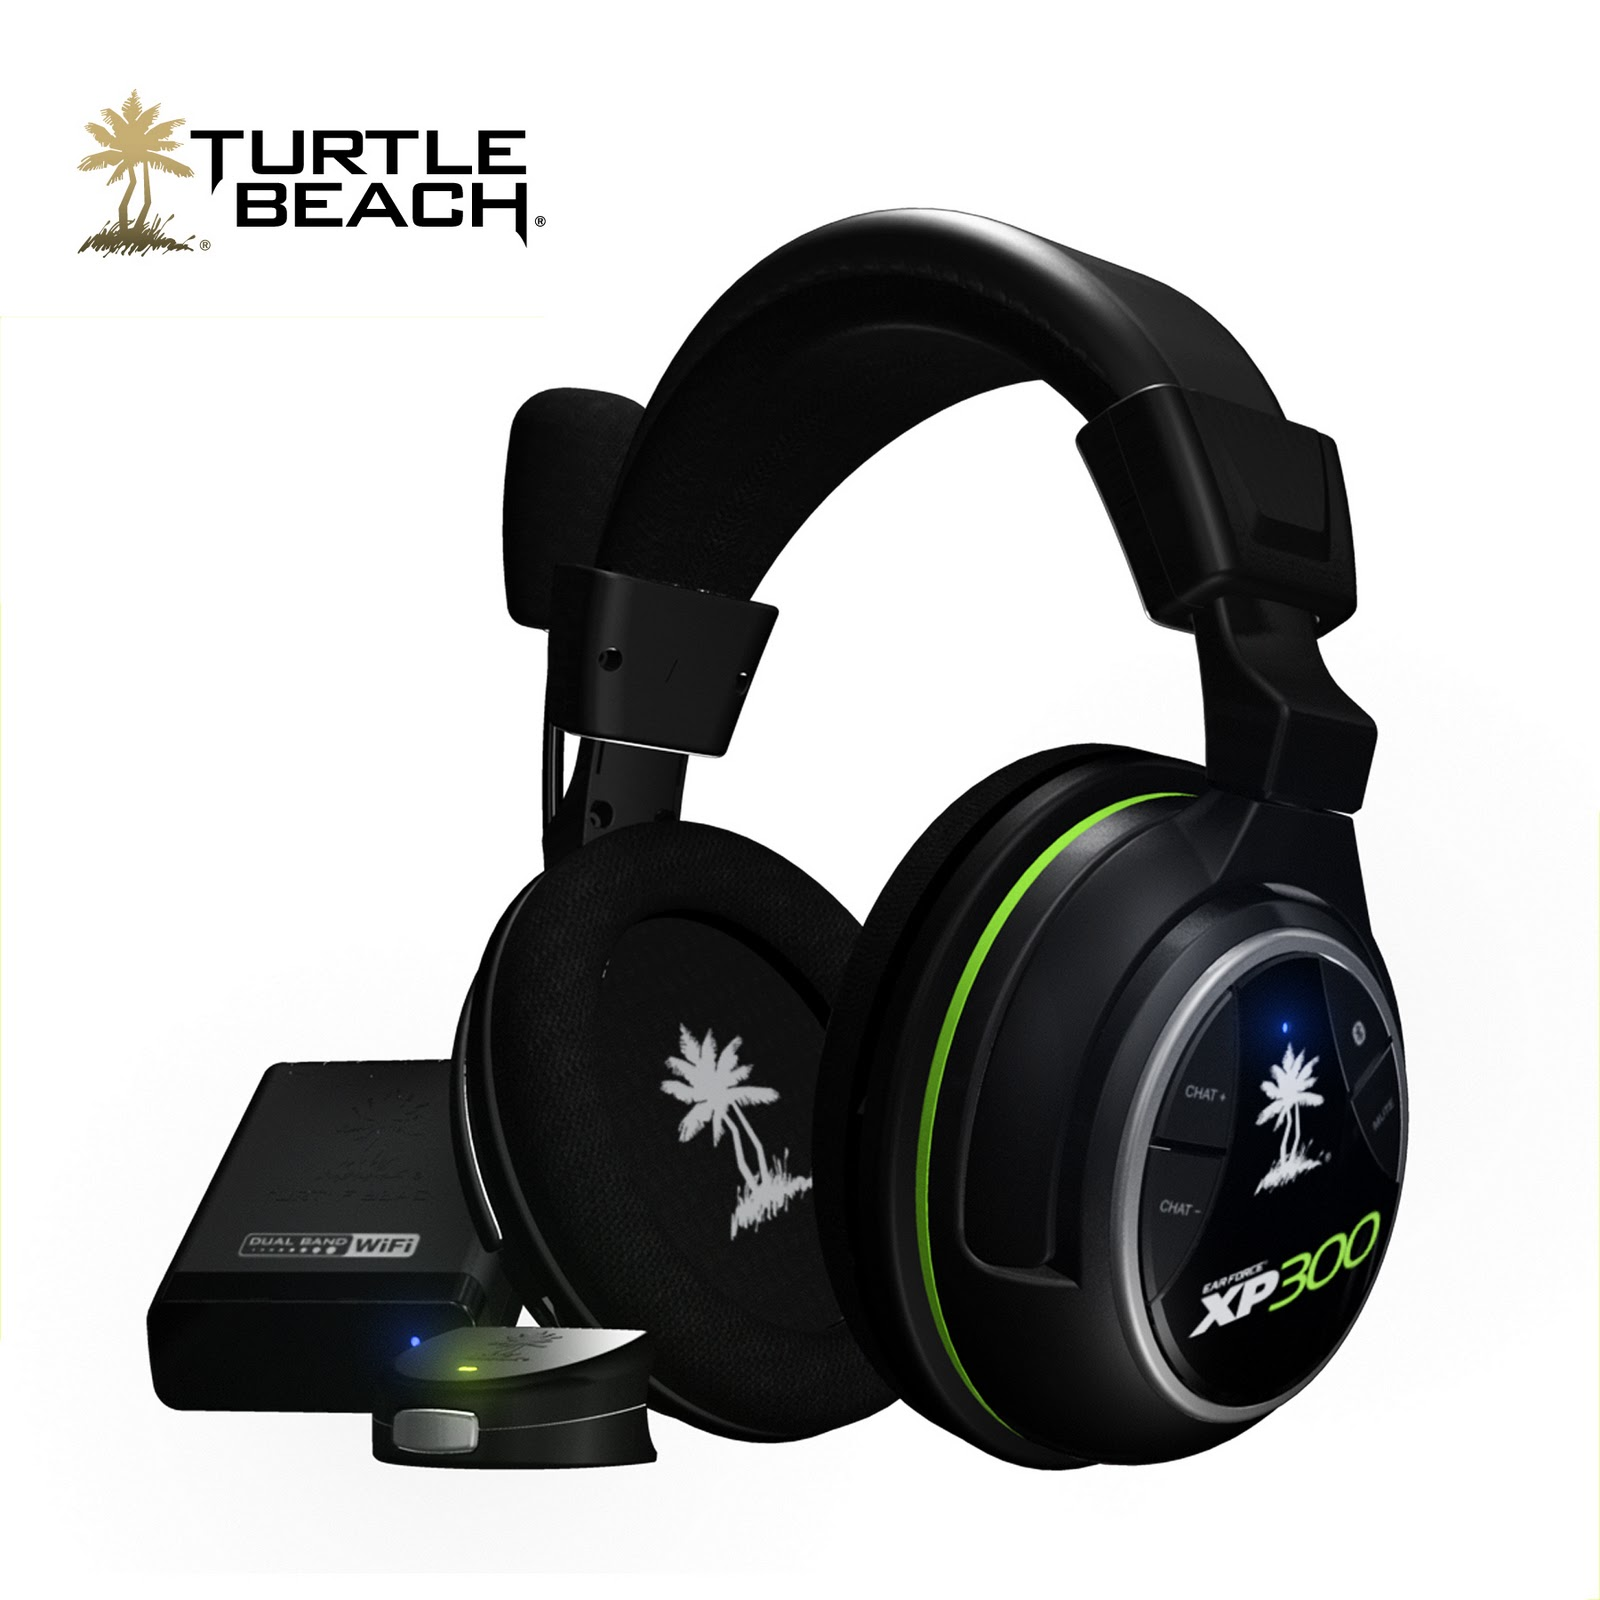 New Turtle Beach headsets debut at CES - Digitally Downloaded